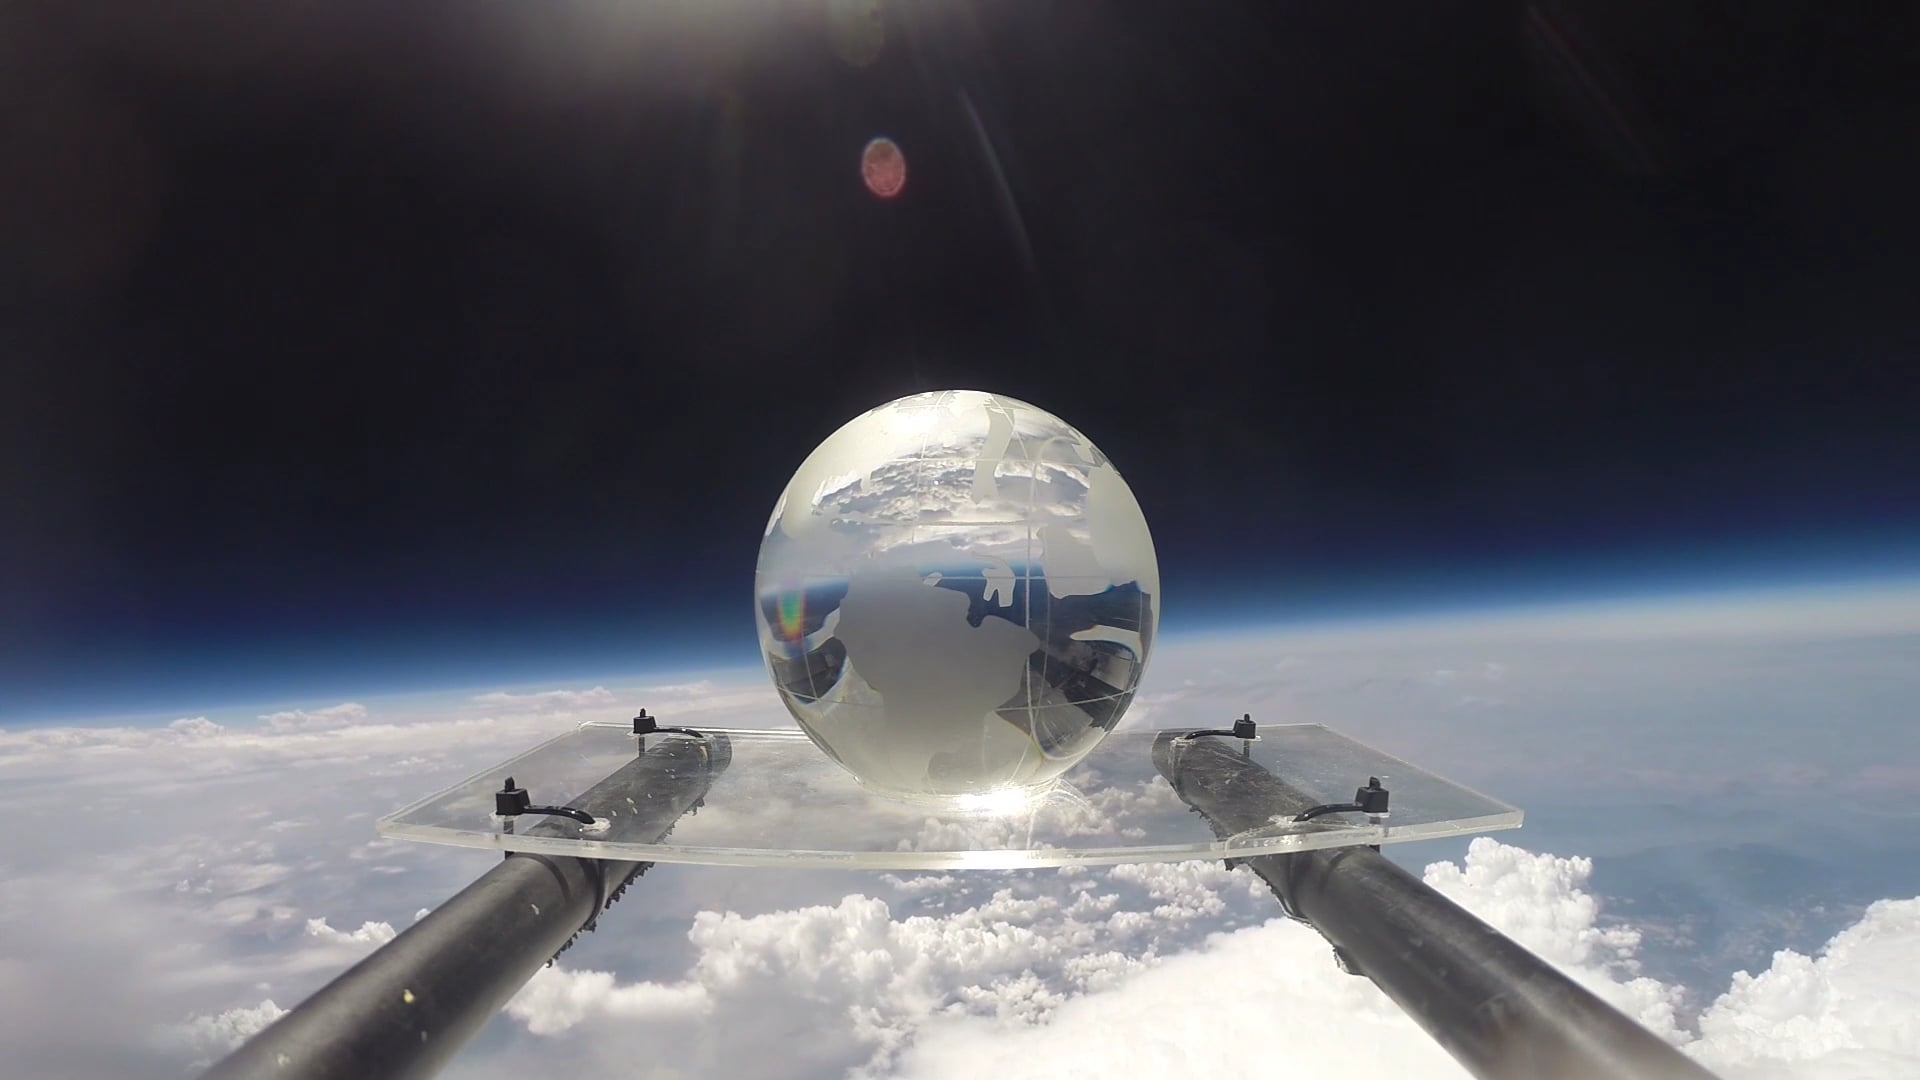 A Crystal Earth Globe in the Stratosphere